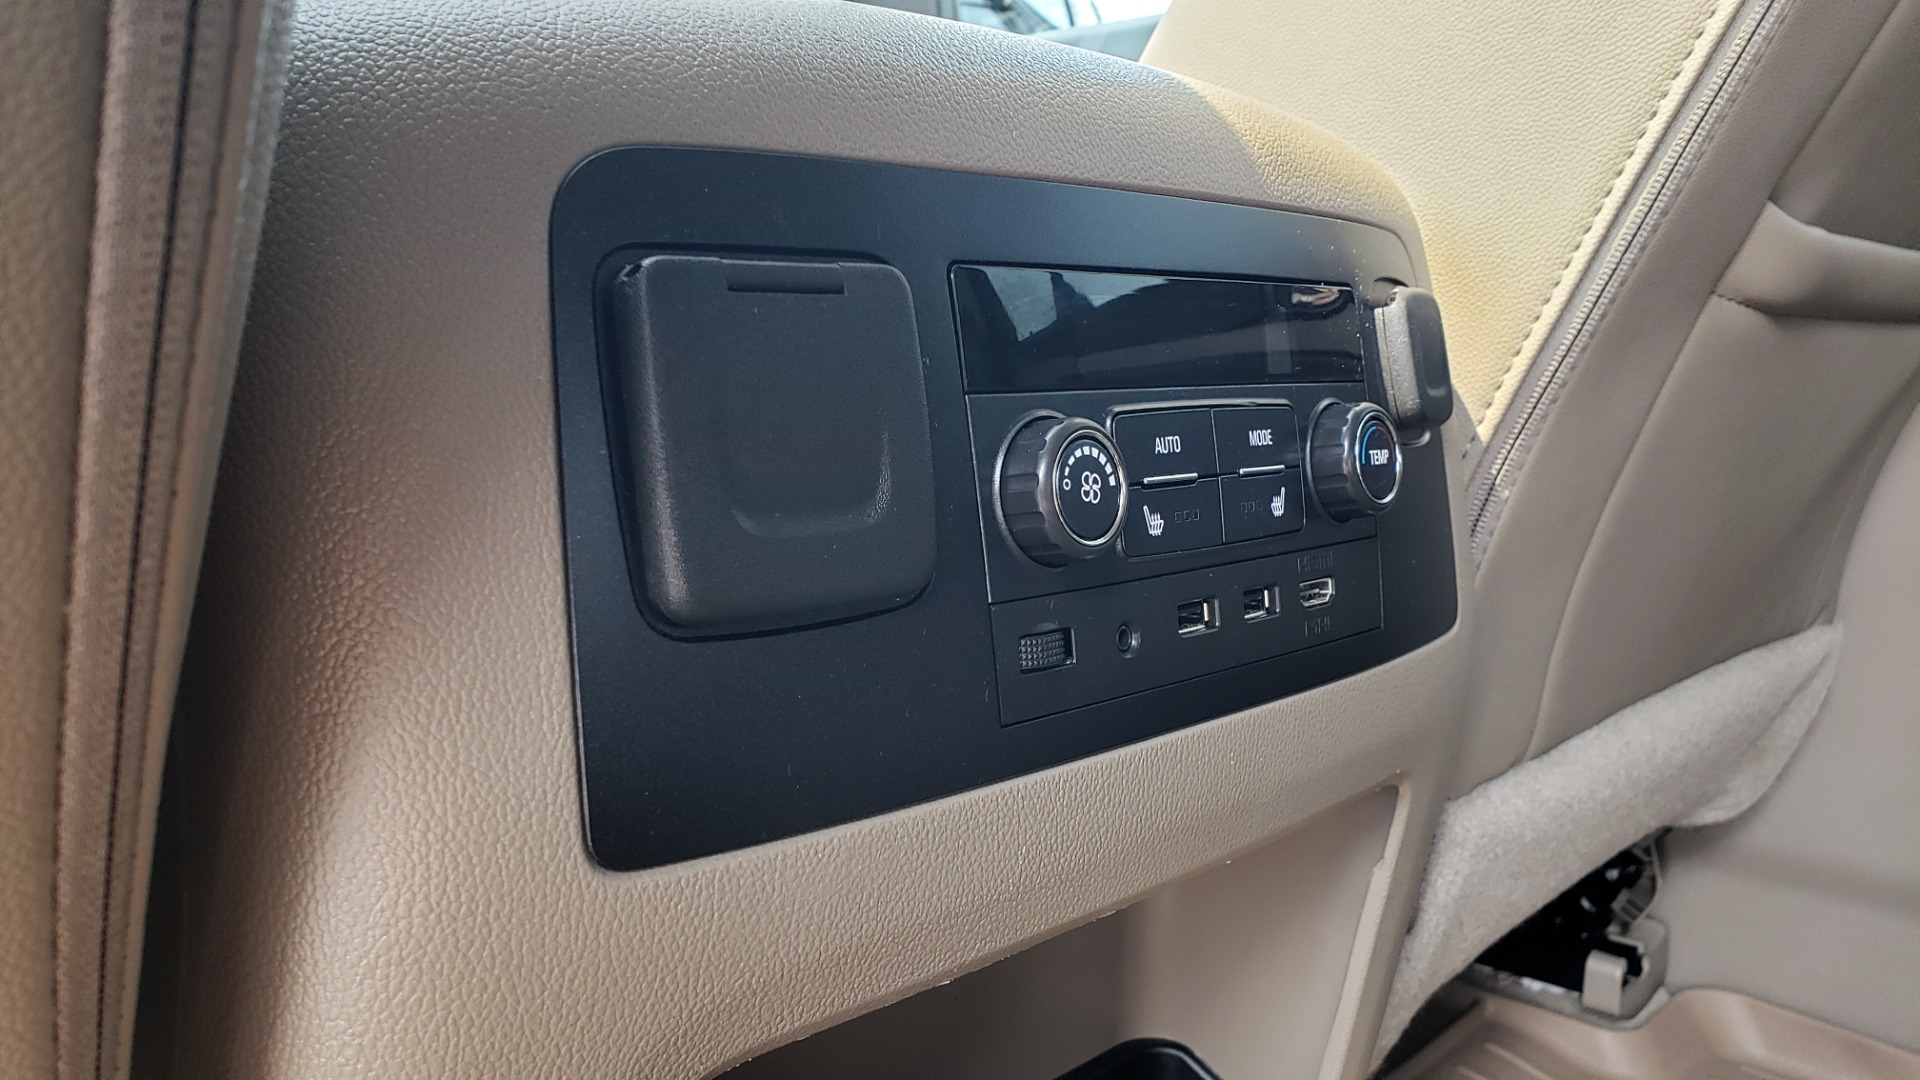 Used 2018 Chevrolet TAHOE PREMIER 4WD / NAV / SUNROOF / BOSE / 3-ROW / HUD / REARVIEW for sale $63,995 at Formula Imports in Charlotte NC 28227 69